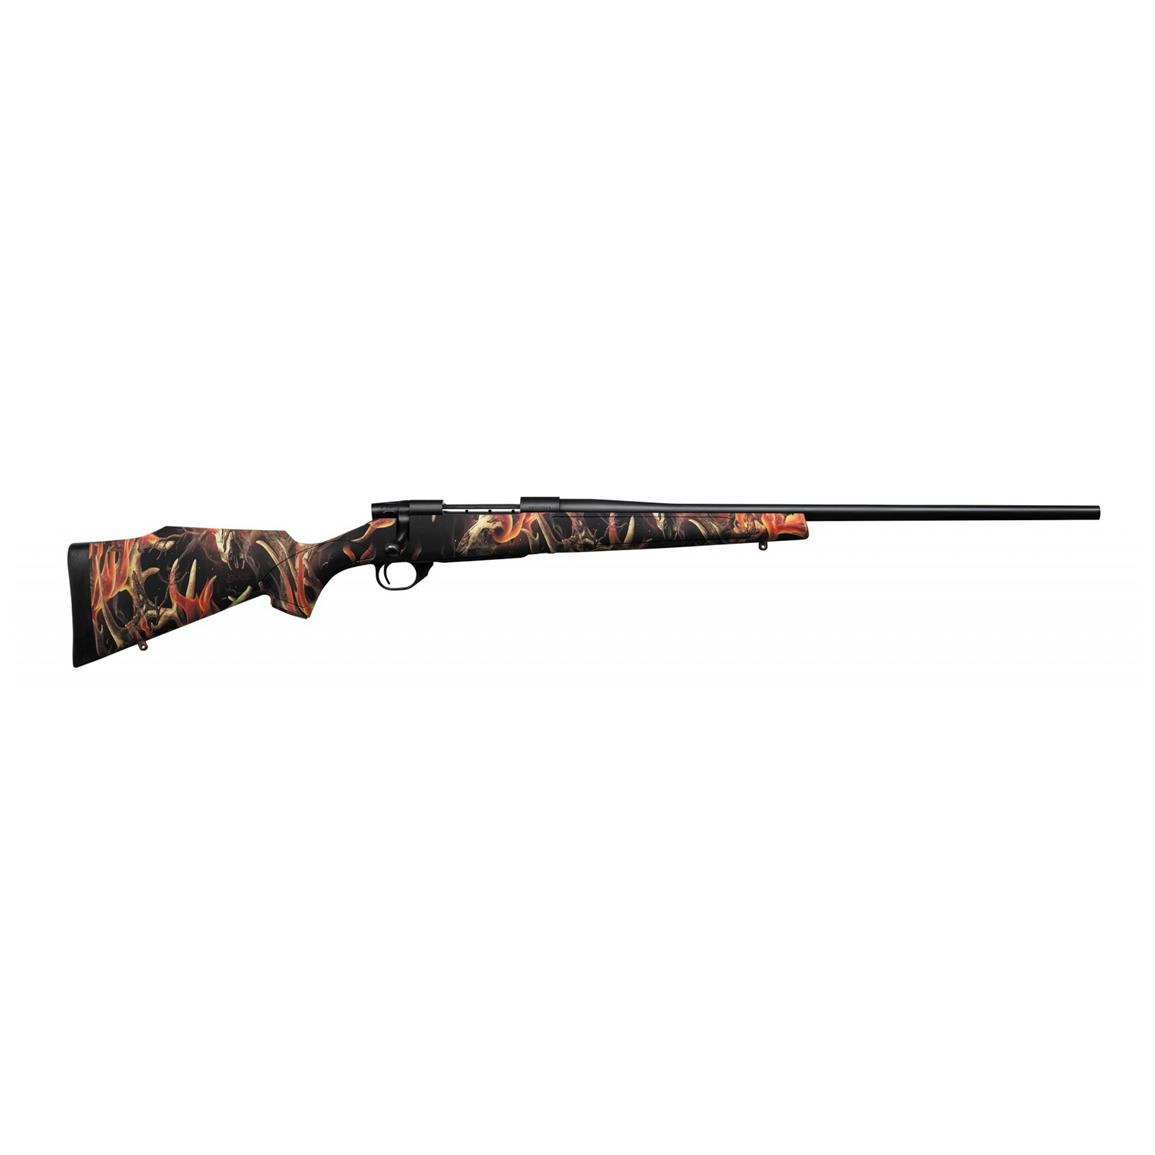 Weatherby WBY-X Vanguard 2 Blaze, Bolt Action, .243 Winchester, Centerfire, VBZ243NR4O, 747115424467, 24 inch Barrel